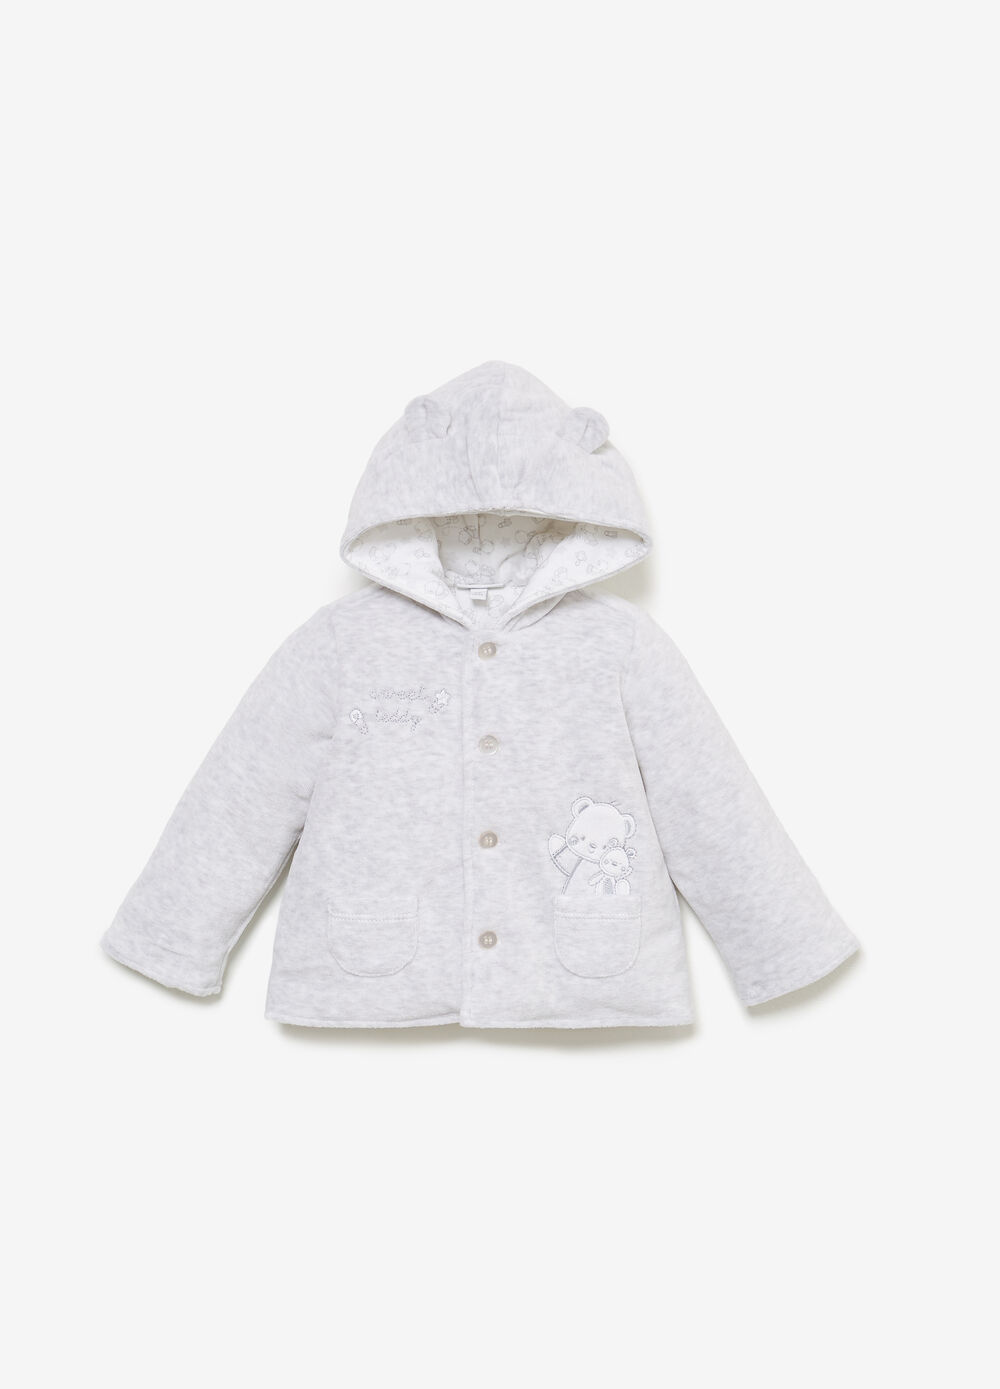 Padded jacket with teddy bear embroidery and patches